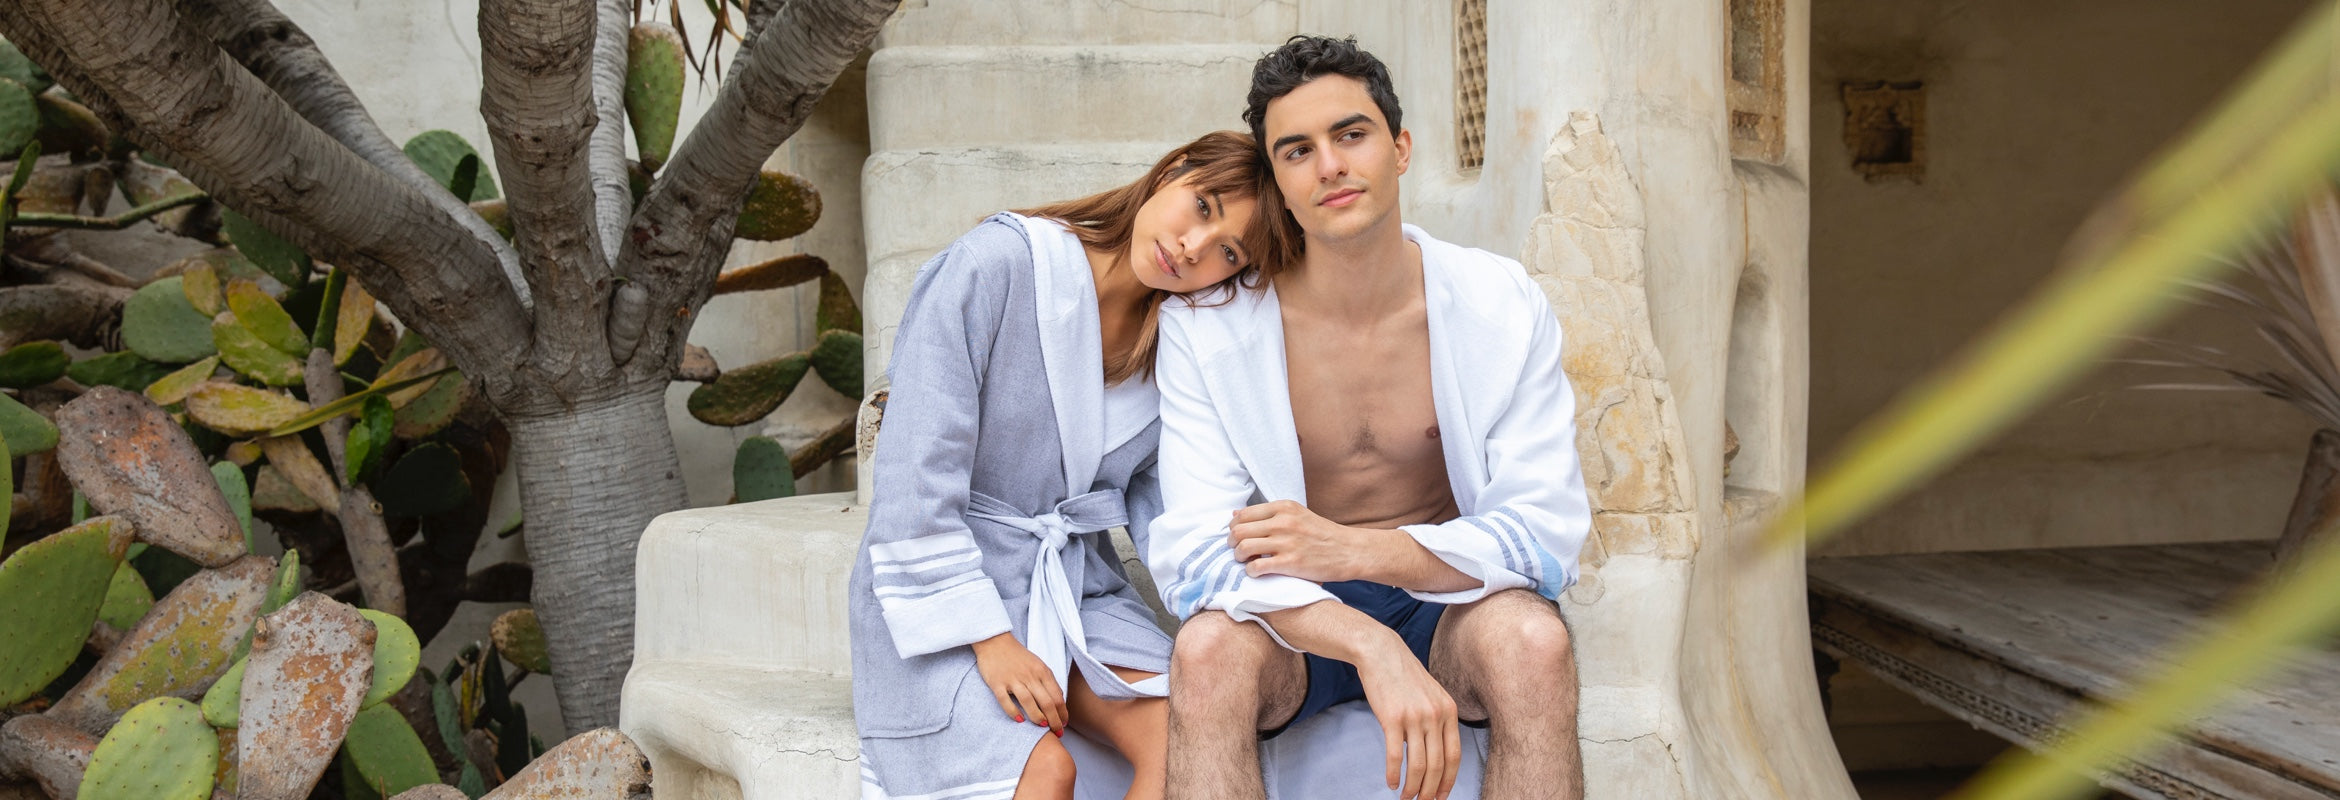 Happy couple lounges together in Hammam robes.